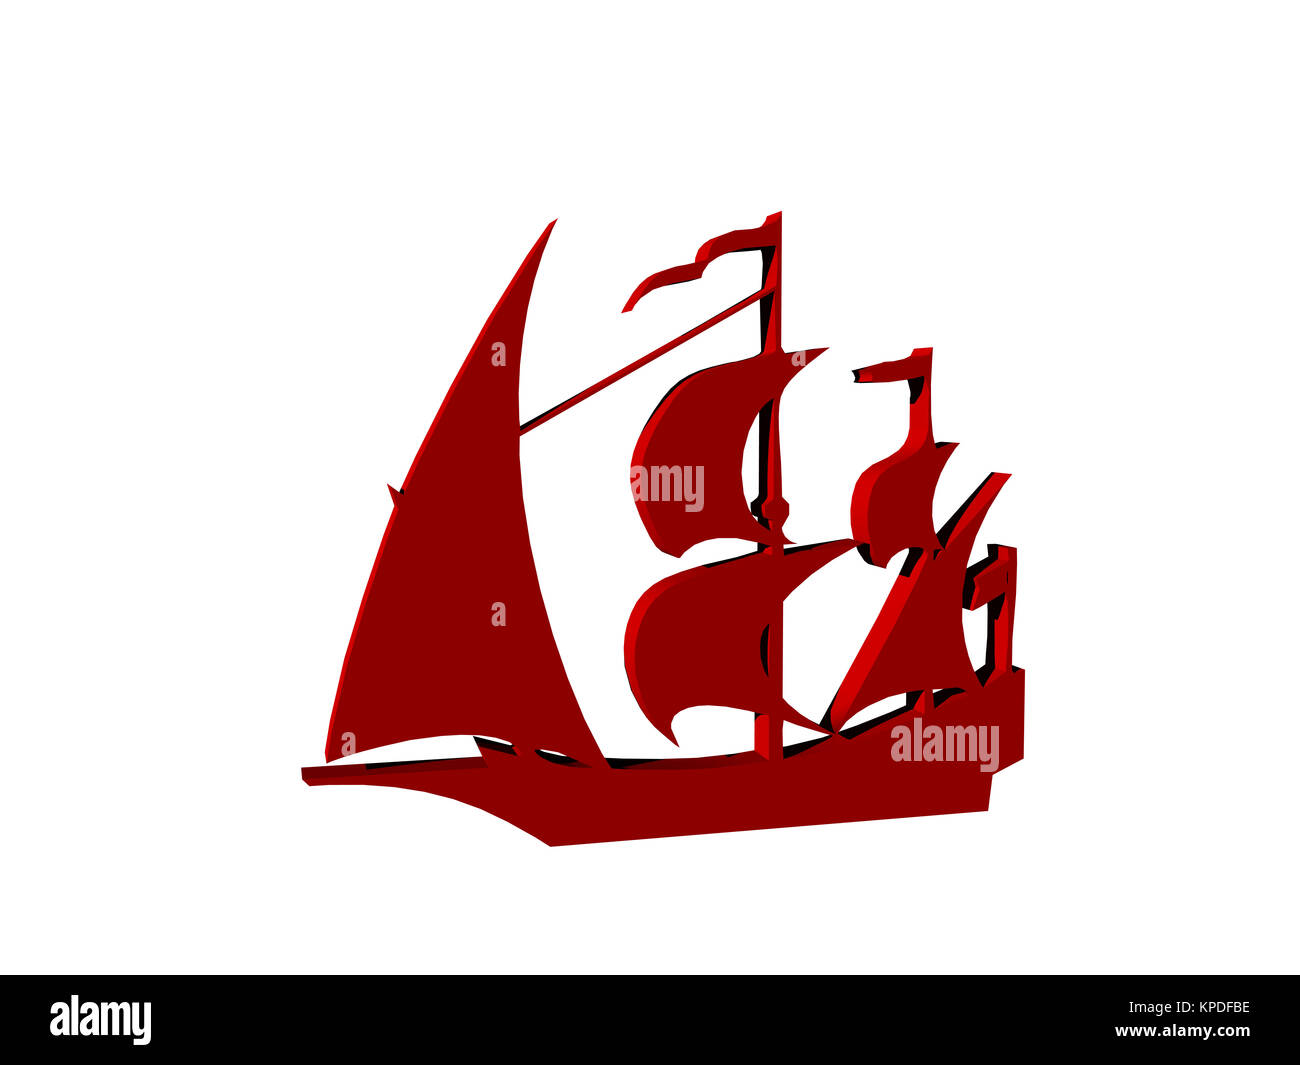 ships silhouettes - Stock Image